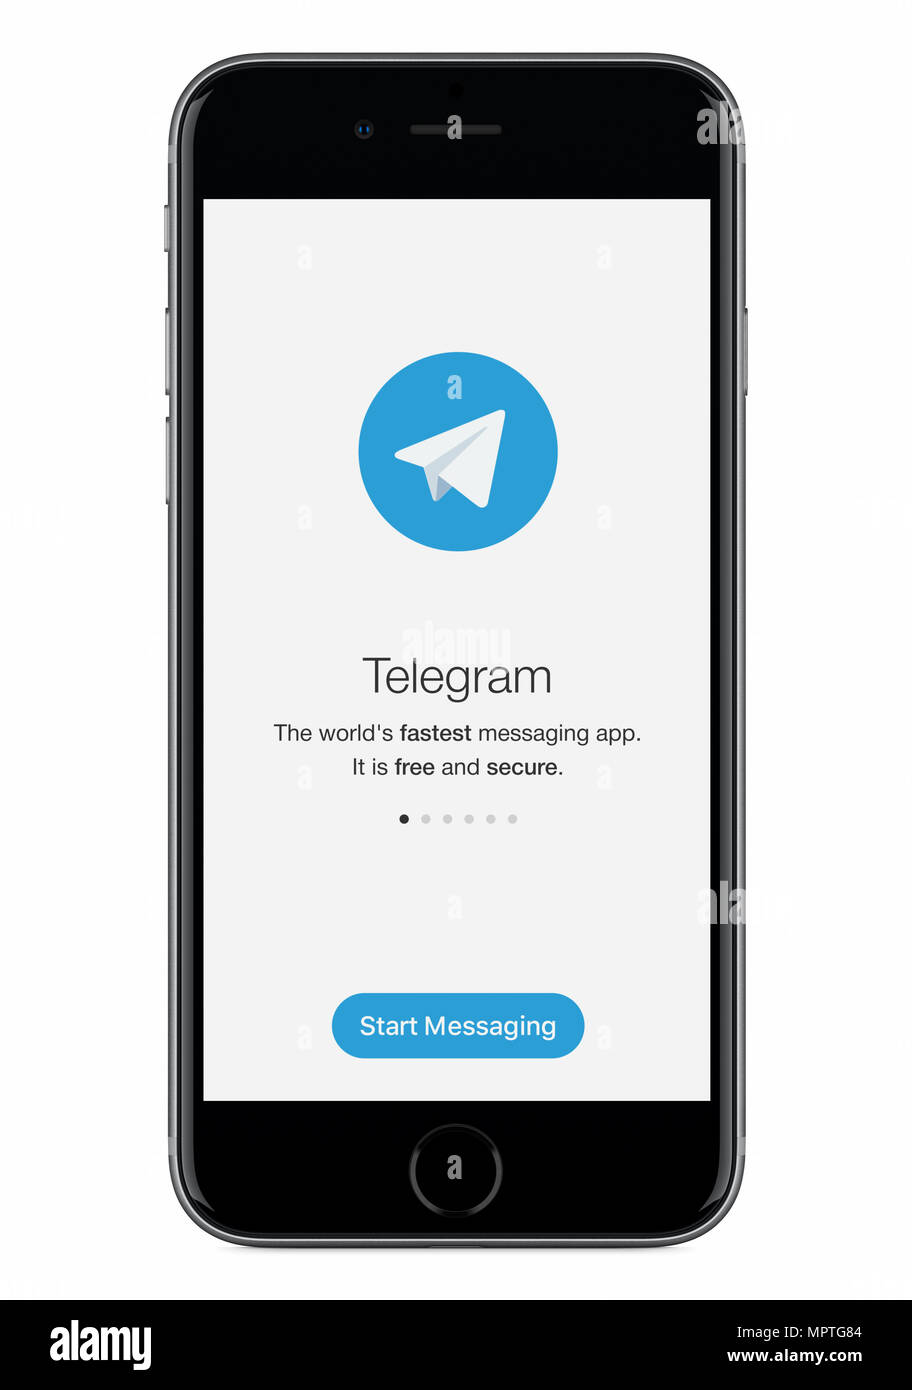 Telegram messenger launch screen with Telegram logo on black Apple iPhone 8 display. - Stock Image